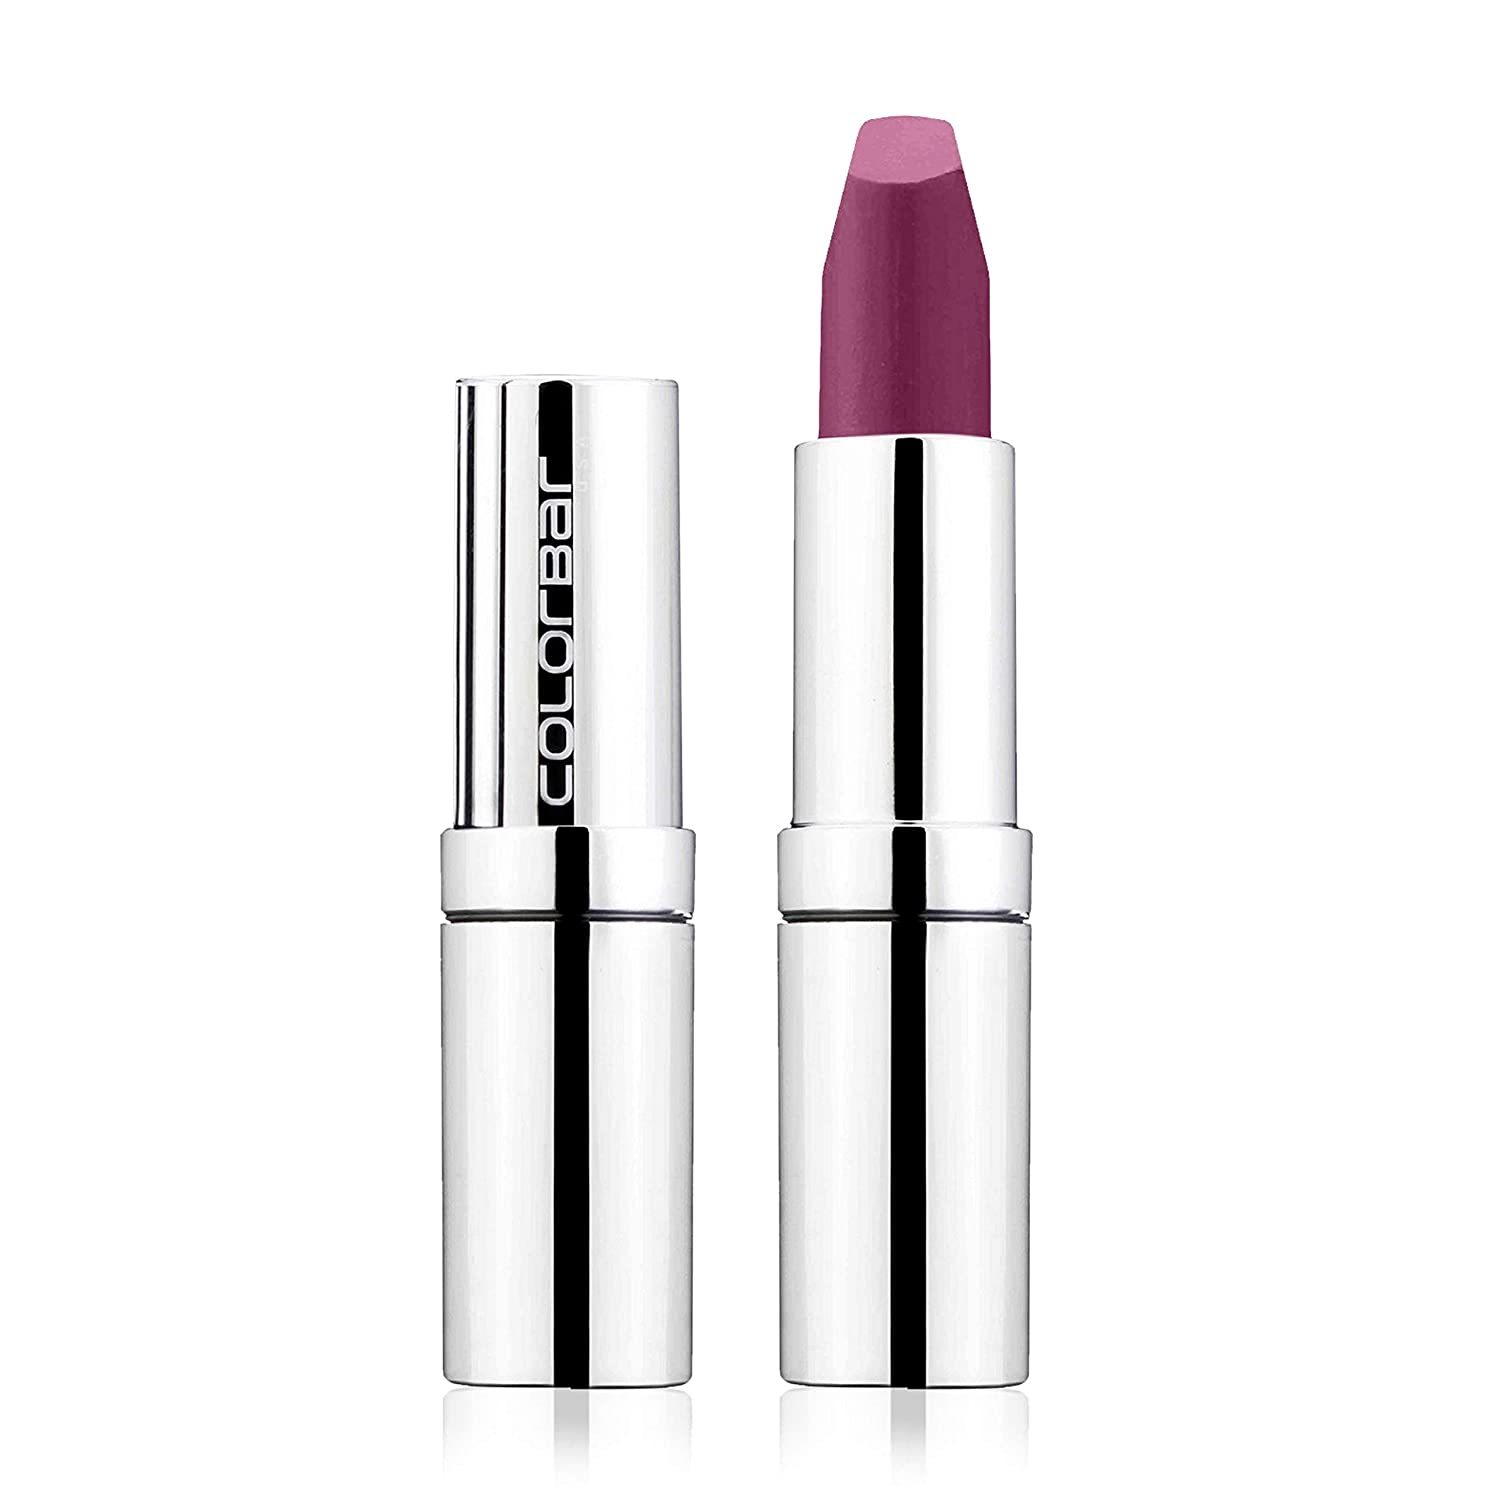 Colorbar Matte Touch Lipstick, Sort Out 070, 4.2g